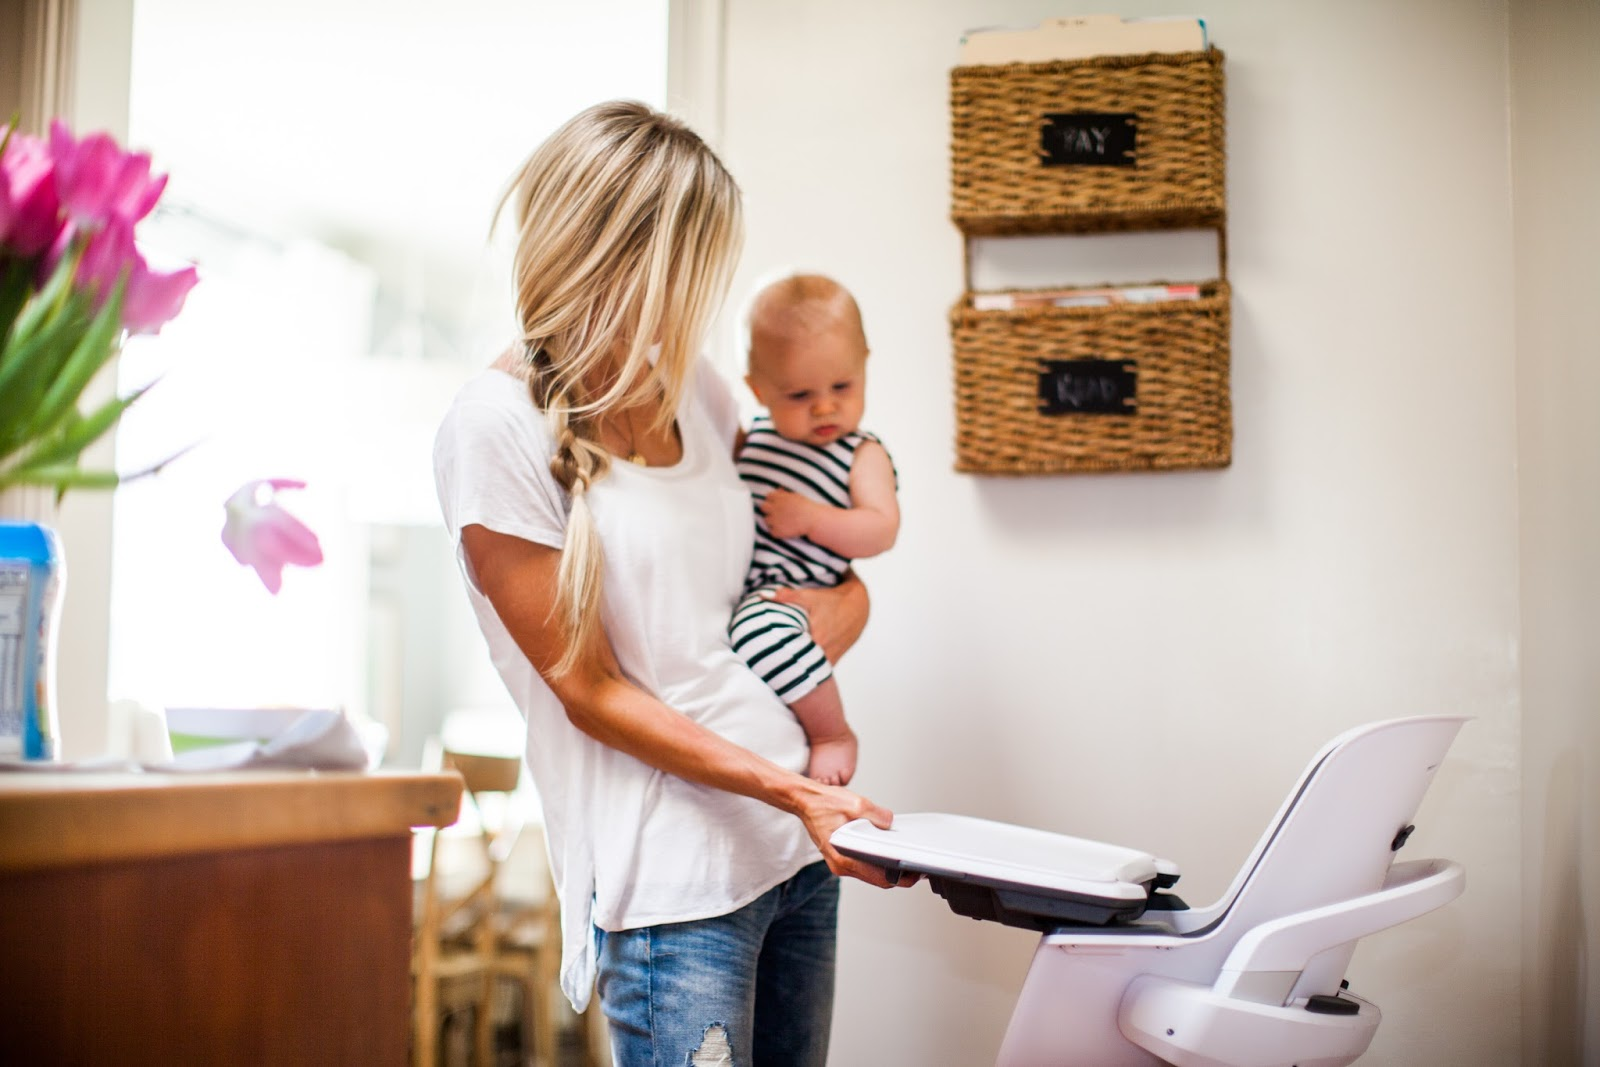 4moms high chair accent for living room uses magnets to simplify parenting